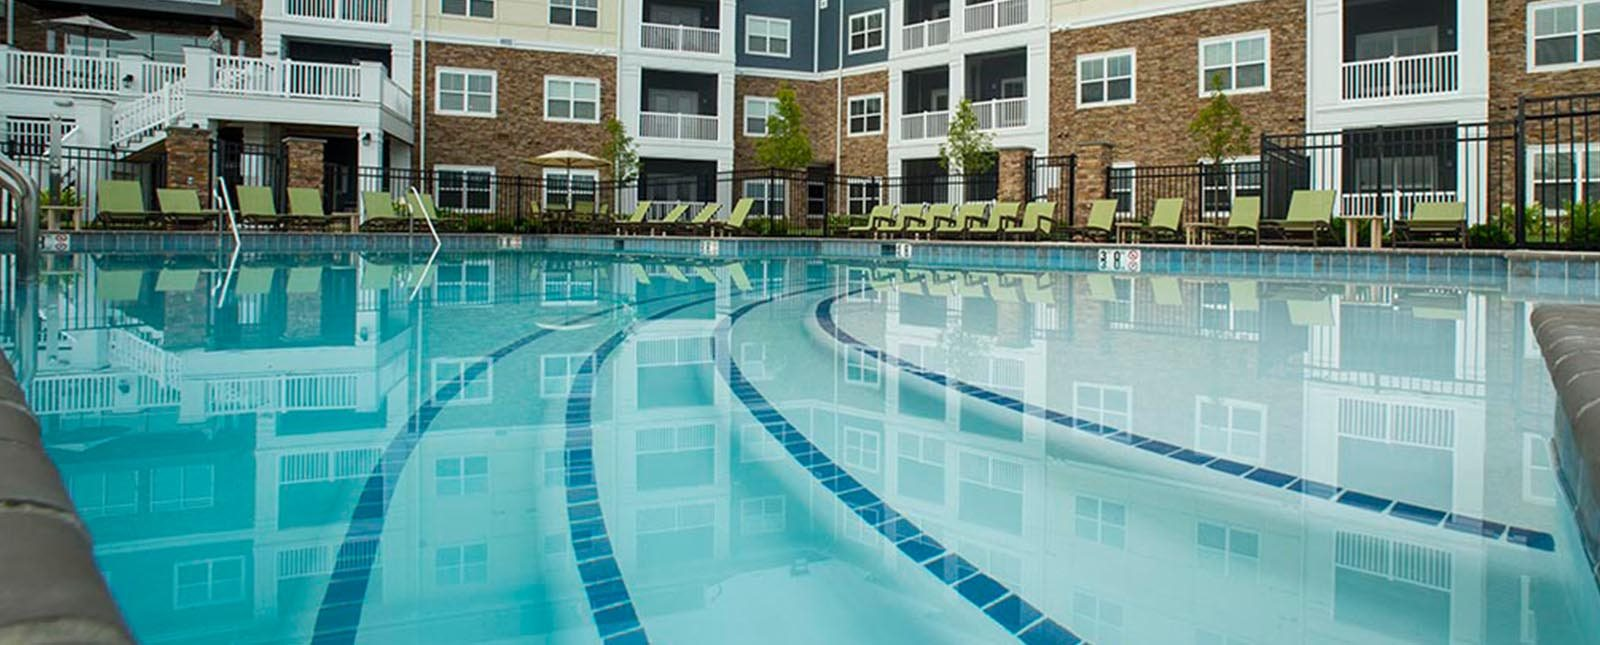 Swimming Pool of The Haven luxury apartments in Malvern, PA